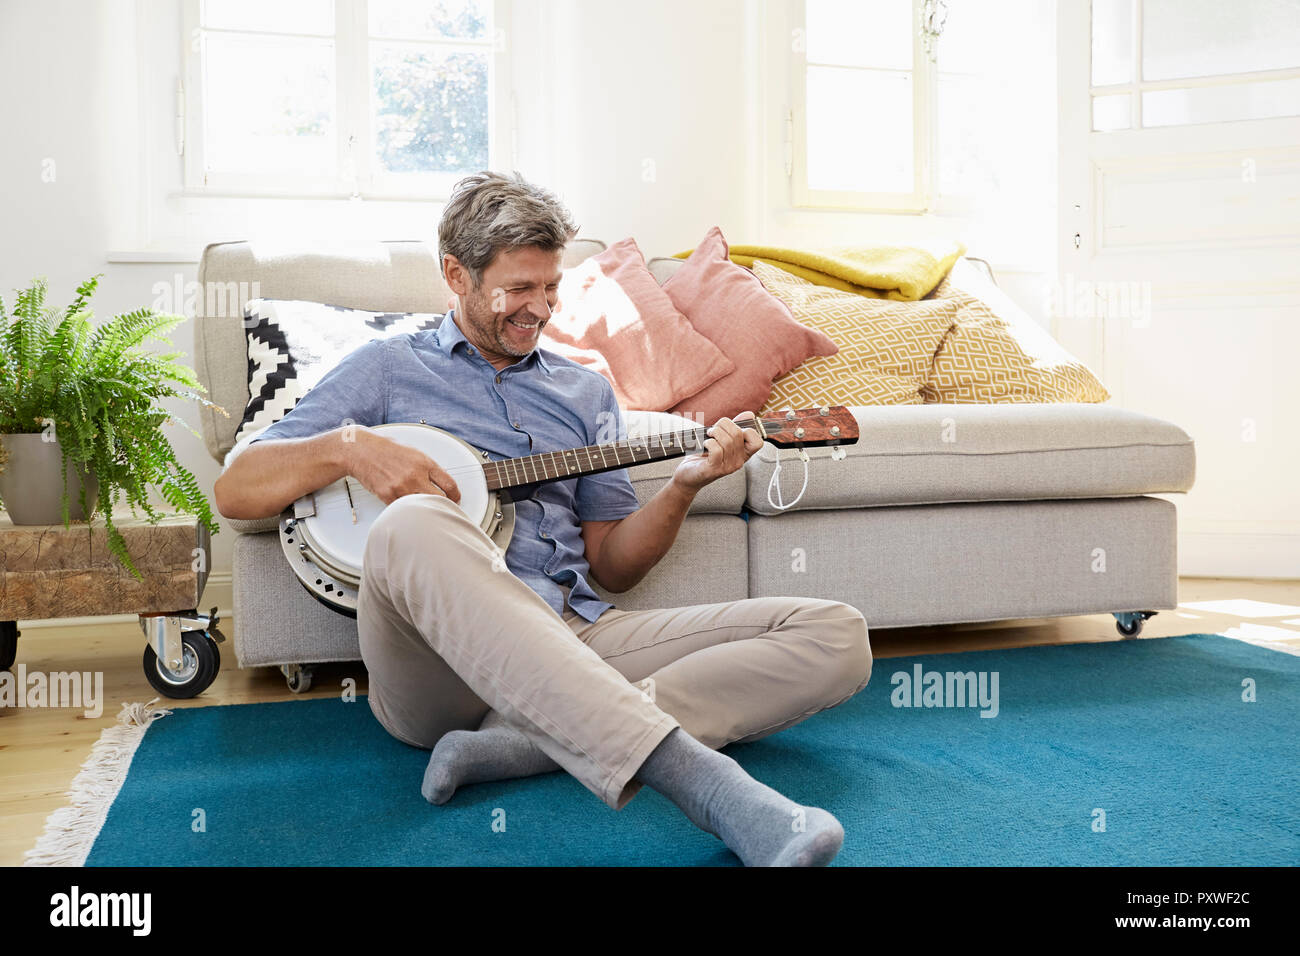 Man sitting on floor, playing the banjo - Stock Image